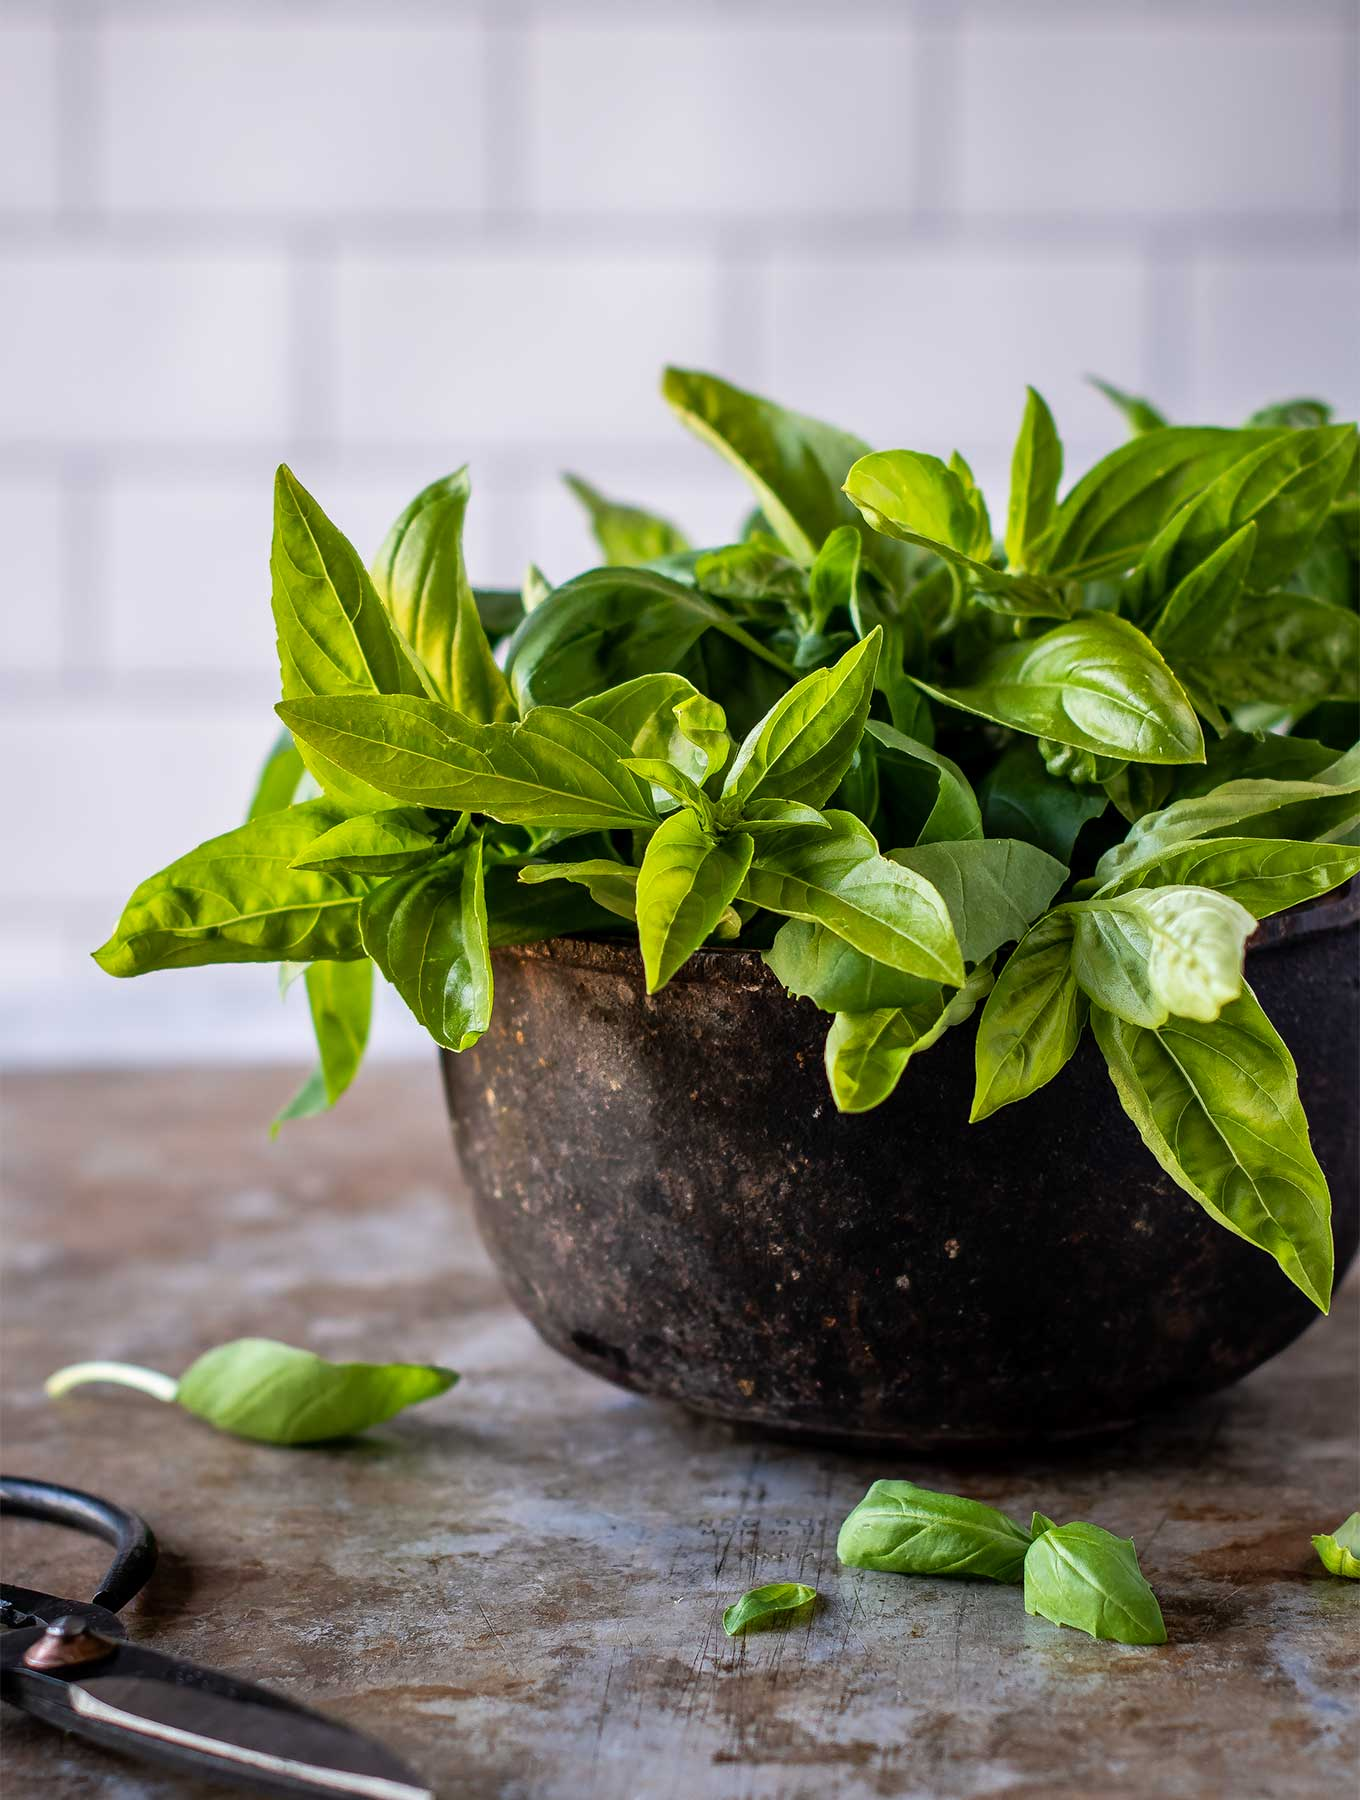 Metal bowl of fresh basil